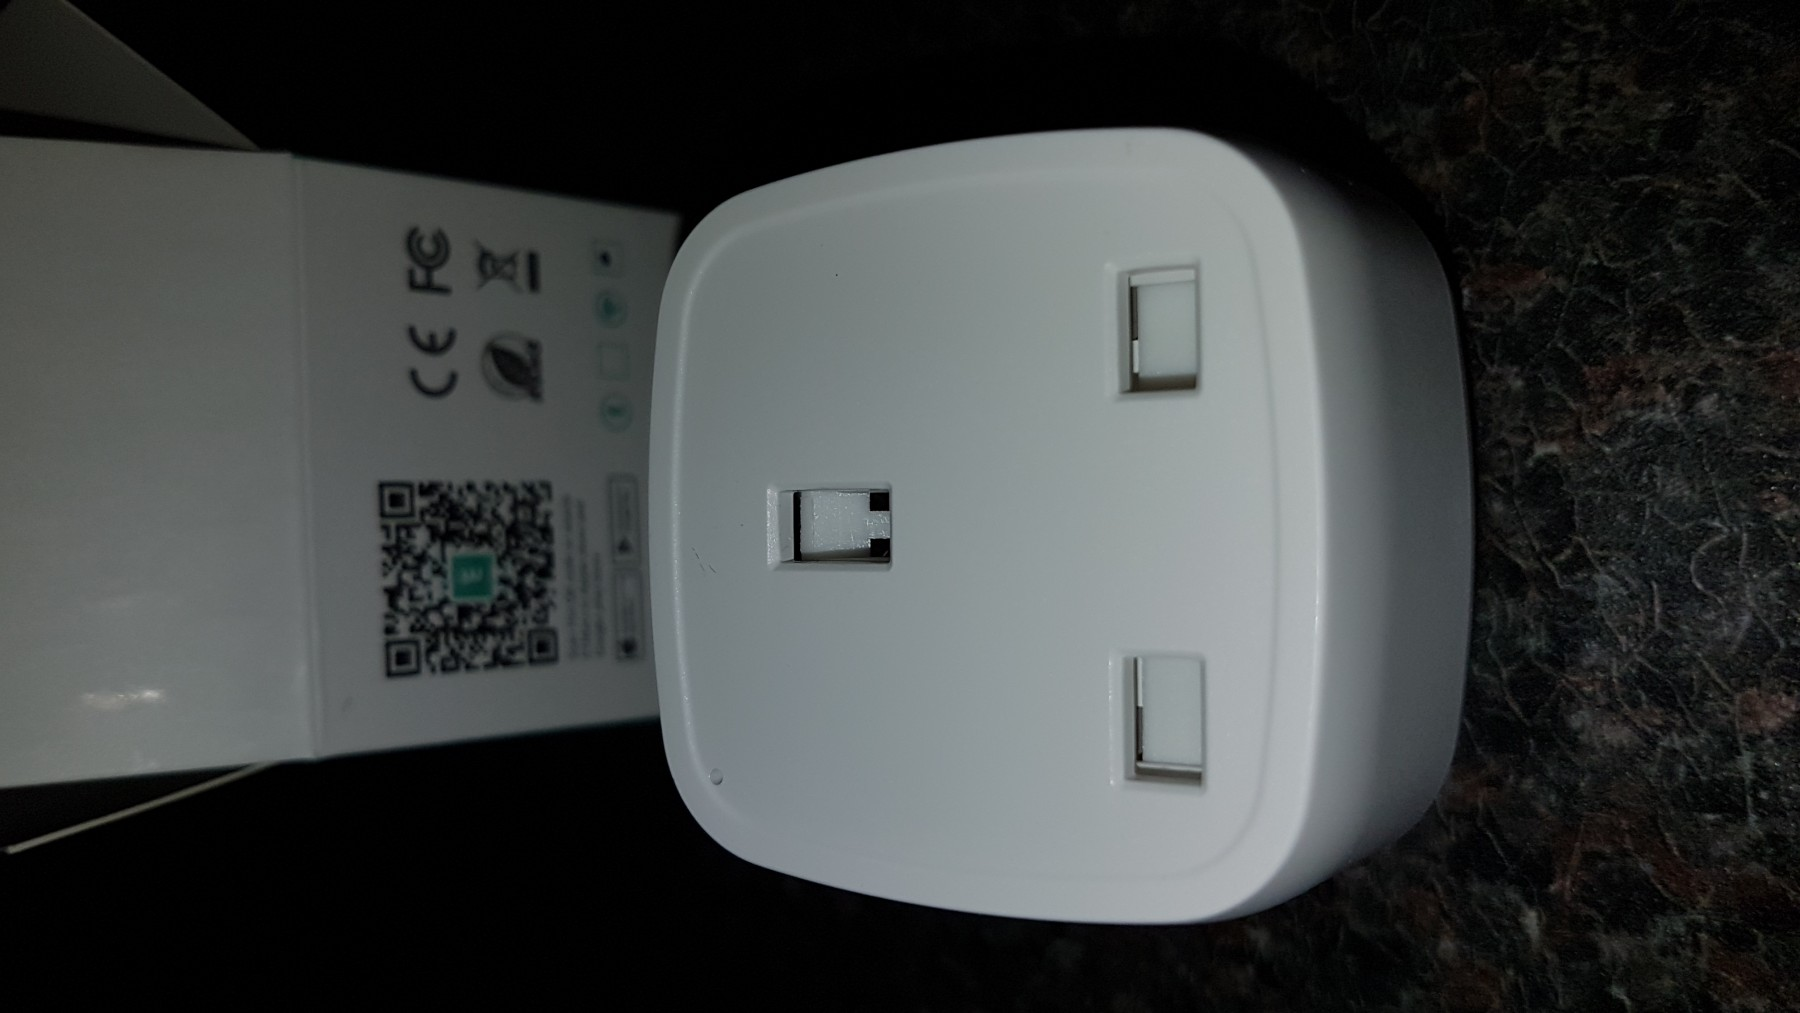 Very small compact smart WiFi plug. 2.4Ghz only.